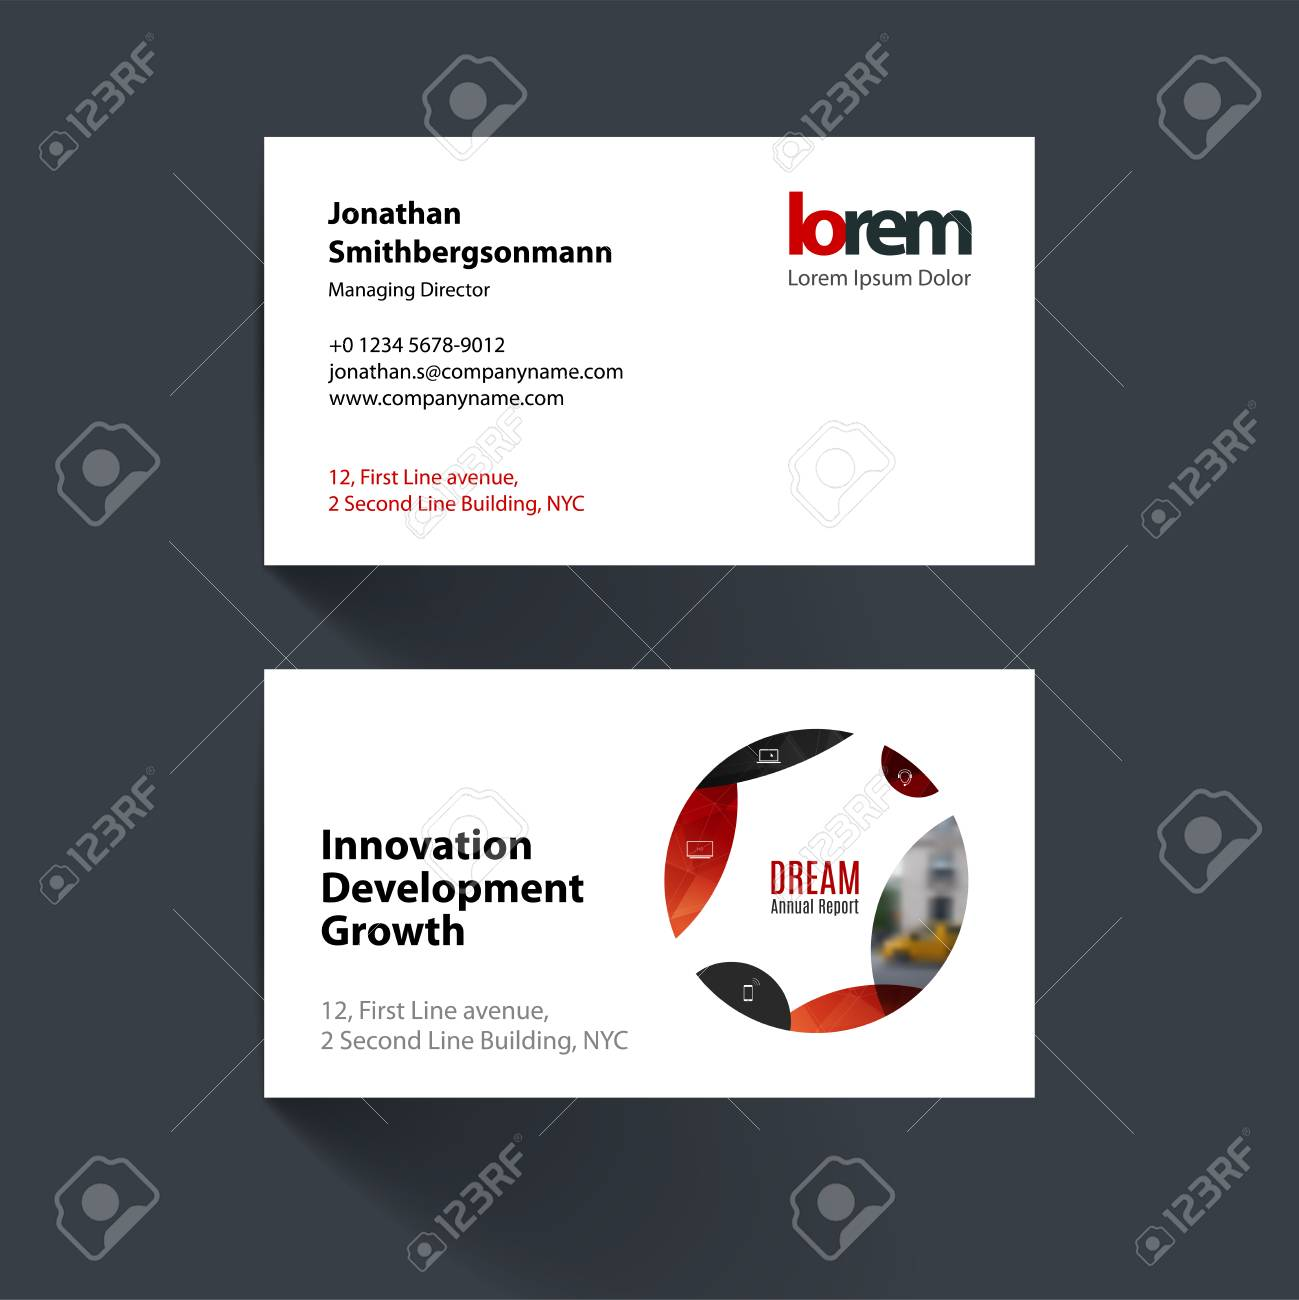 Vector Business Card Template With Red Circle Soft Shapes Round - Round business card template